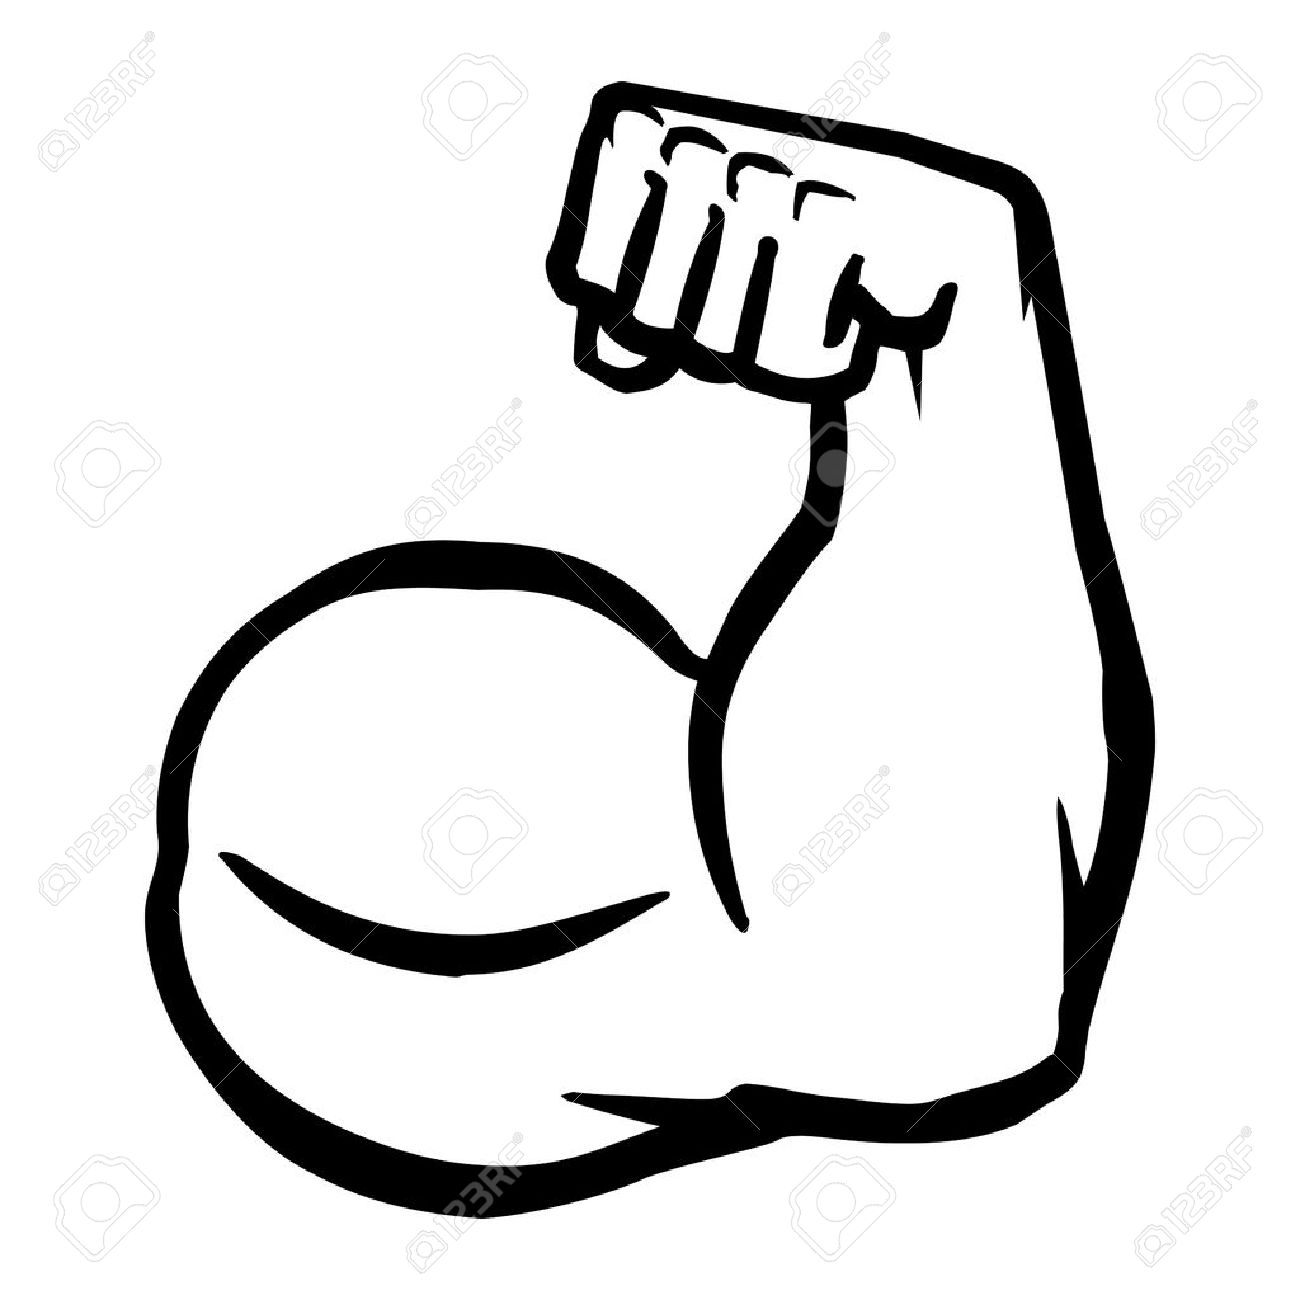 Bicep clipart muscle mass. Biceps drawing at getdrawings